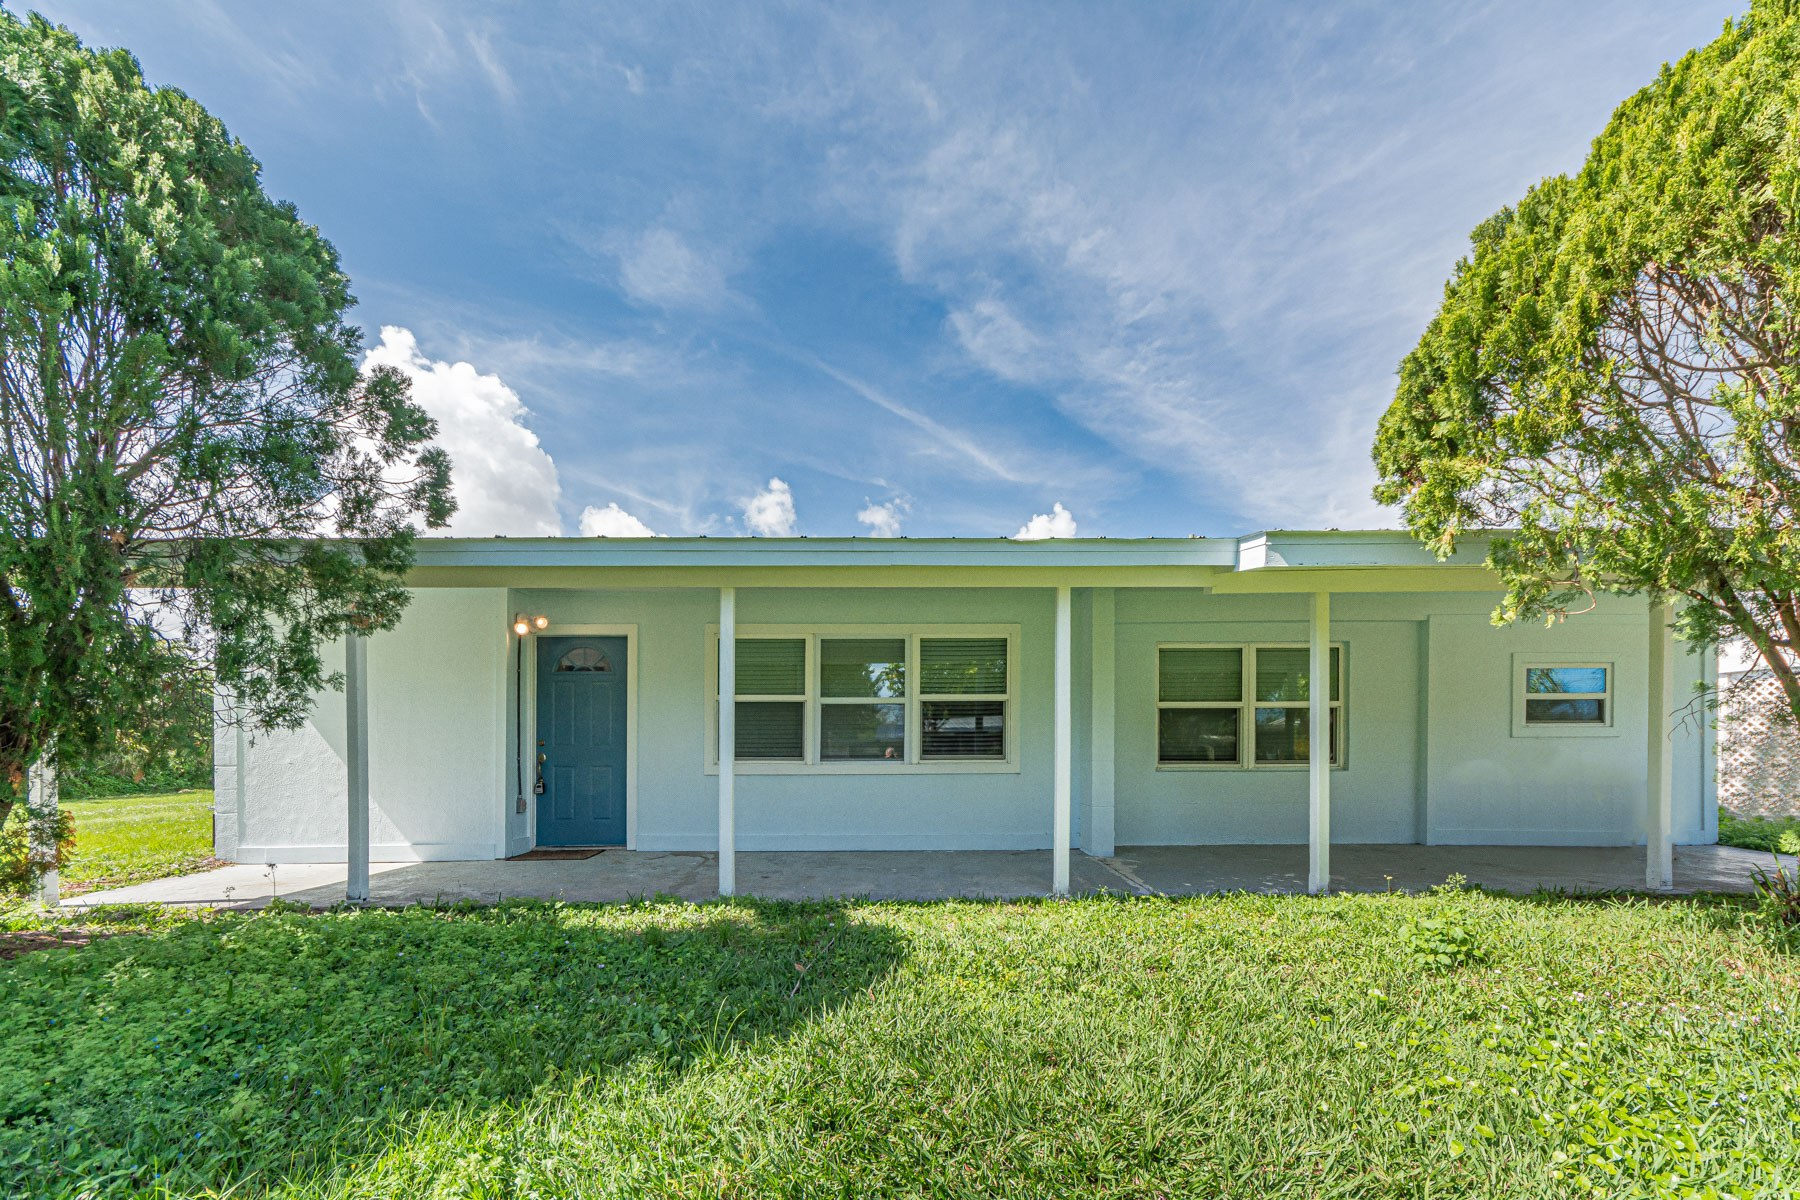 Single Family Homes for Sale at 1411 5th Avenue, Vero Beach, FL 1411 5th Avenue Vero Beach, Florida 32960 United States